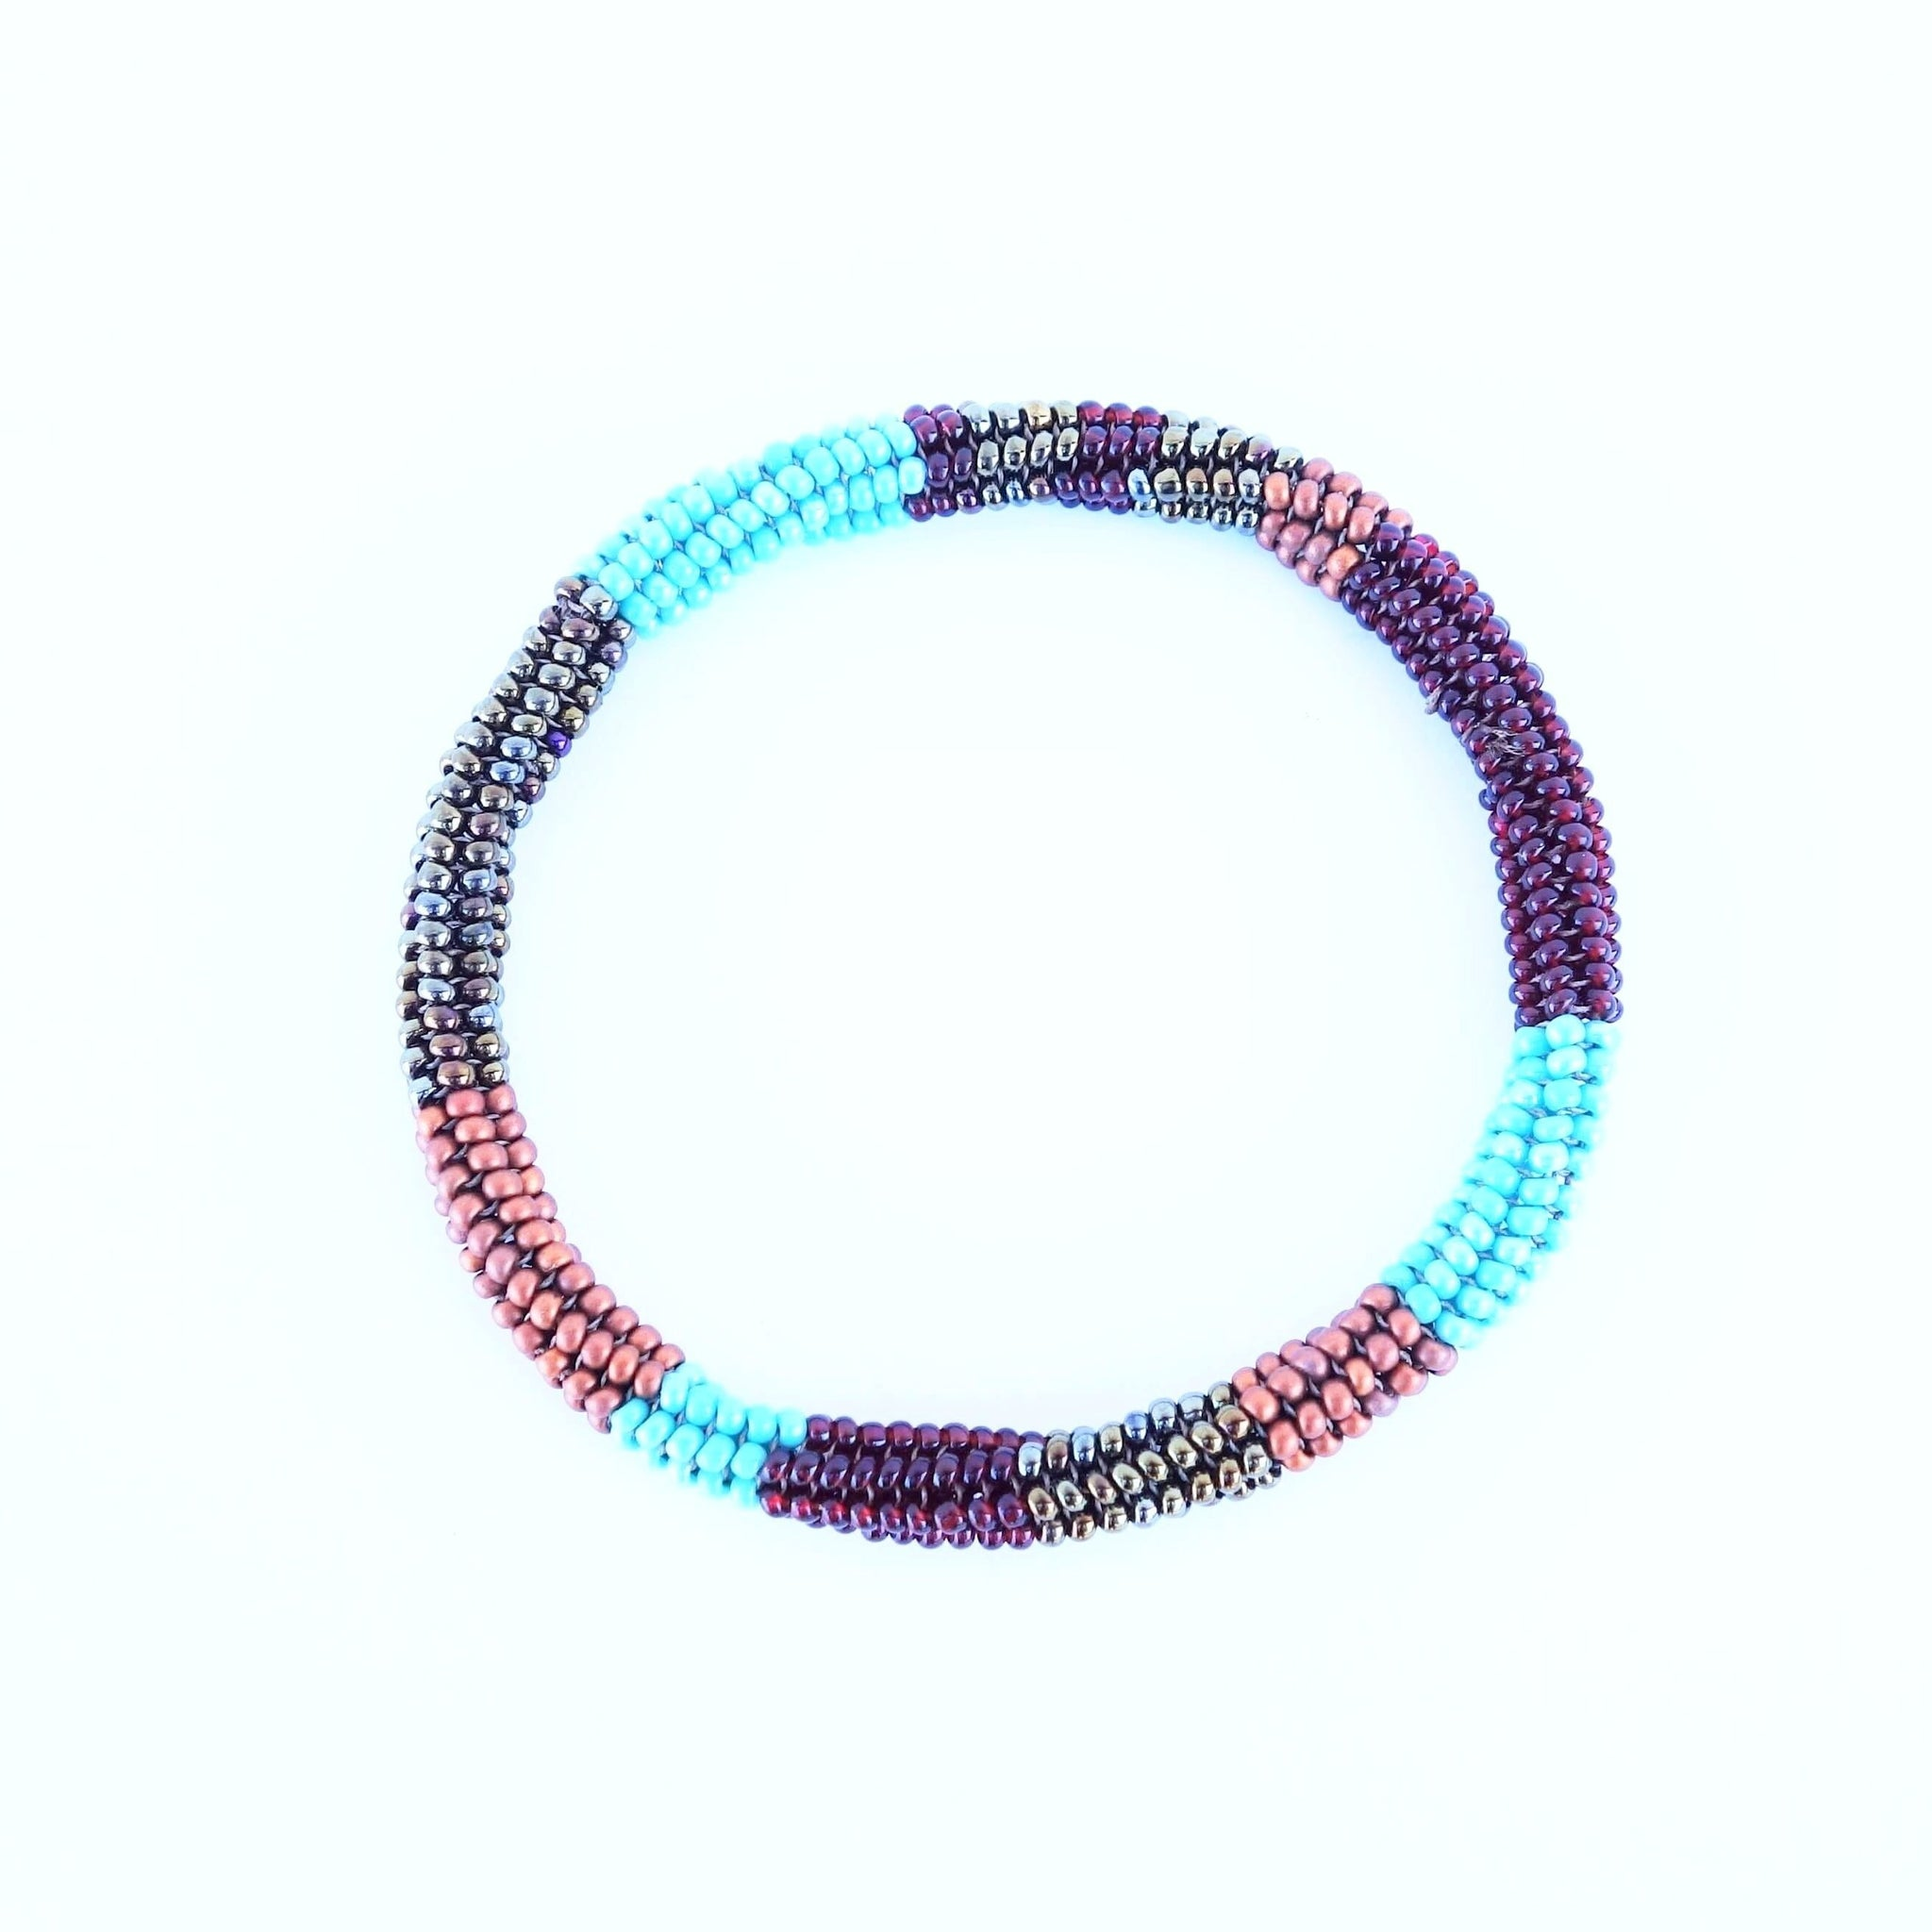 Certified Fair Trade Beaded Bangle